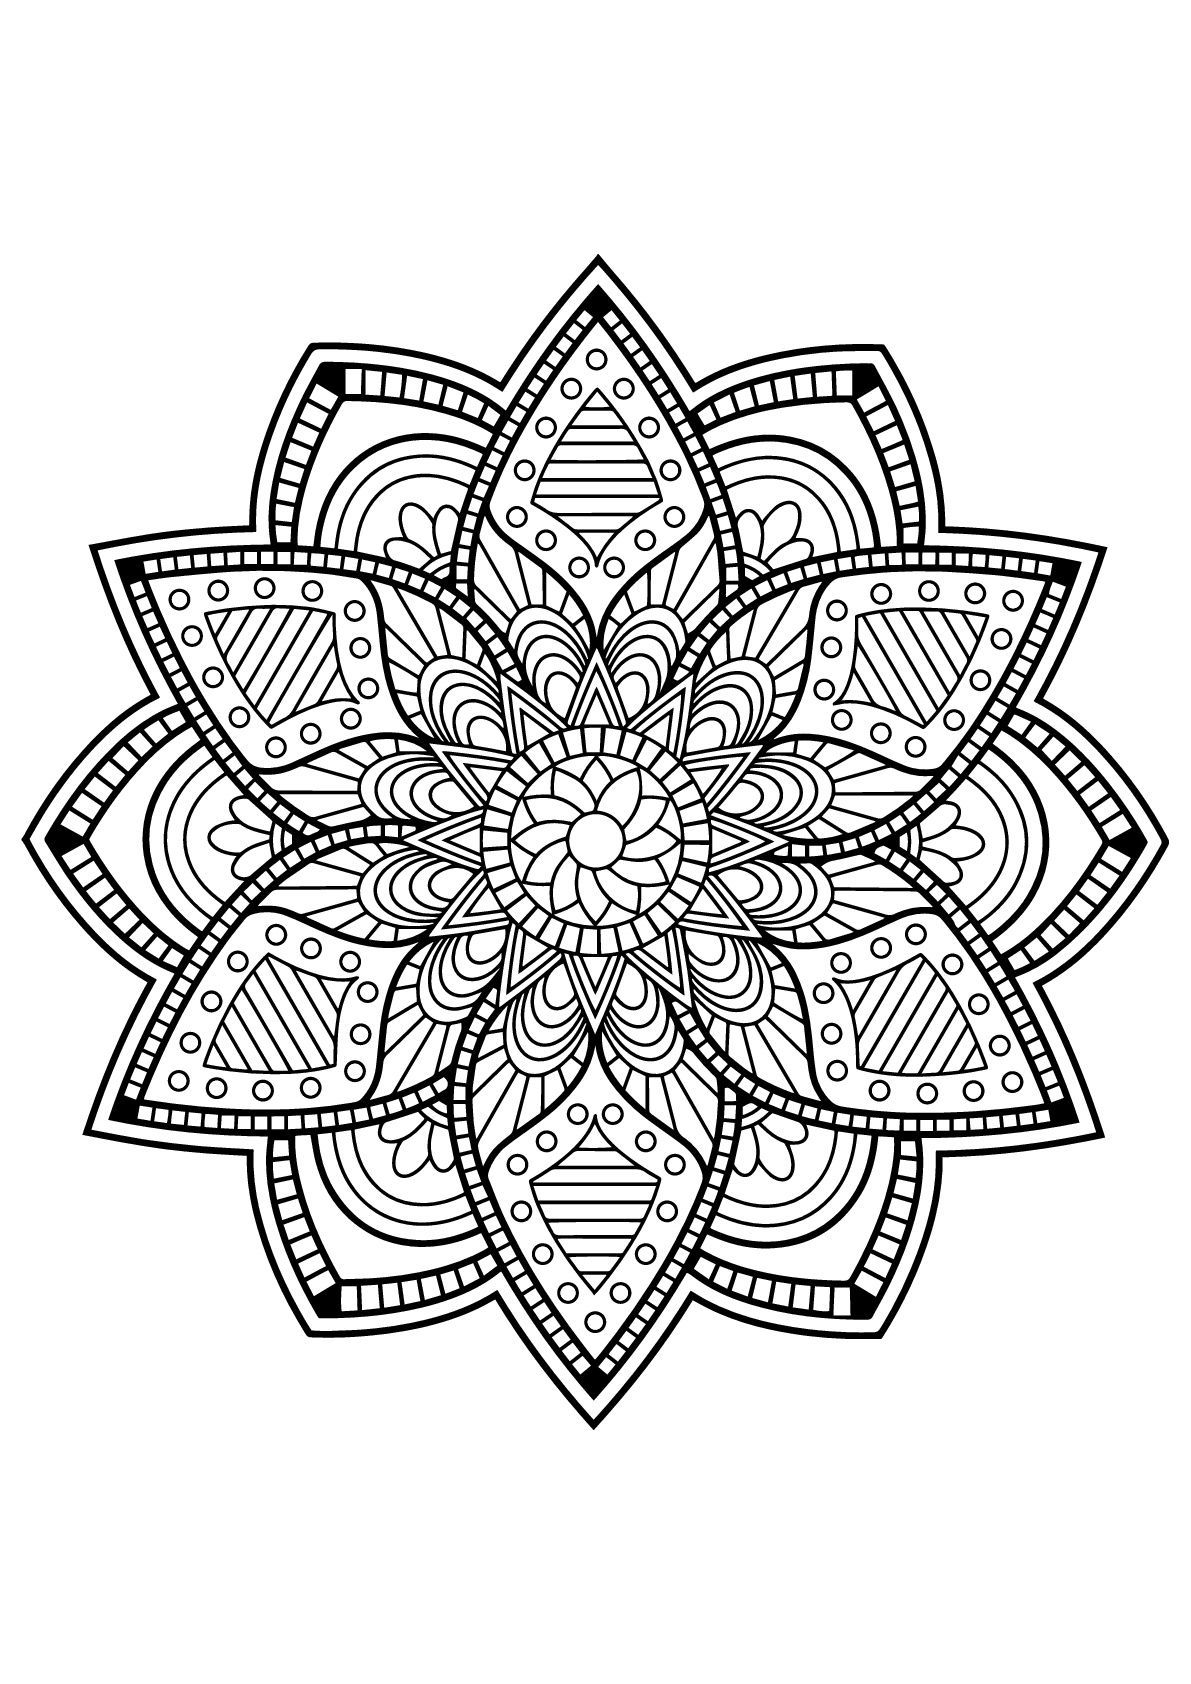 Mandala From Free Coloring Books For Adults 24 Mandalas Coloring